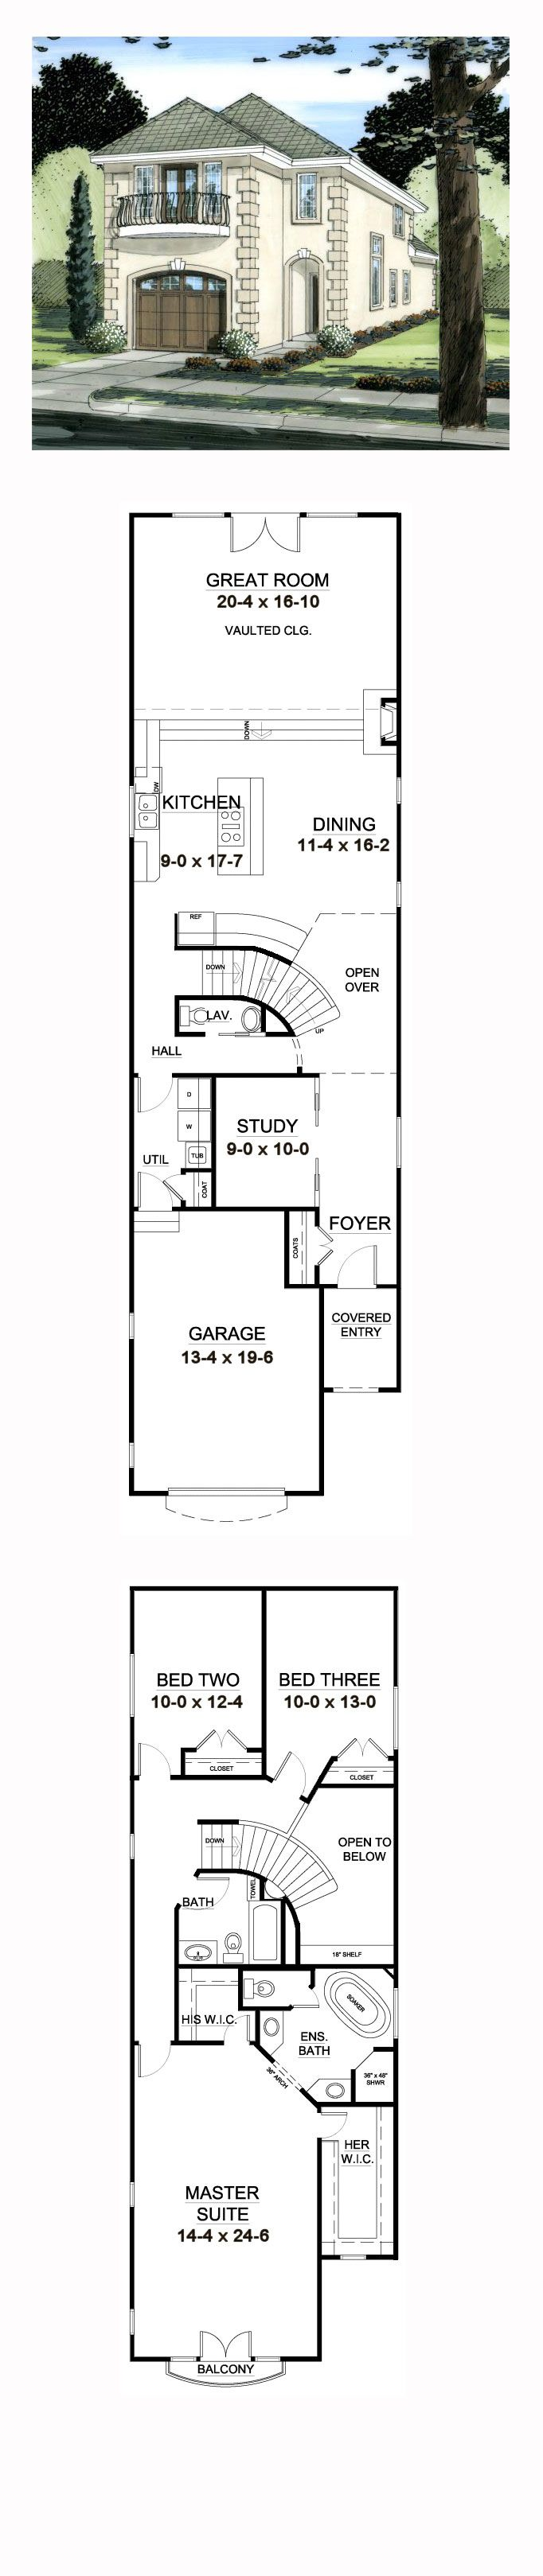 Best 25 narrow house plans ideas on pinterest for Narrow house plans with garage in back